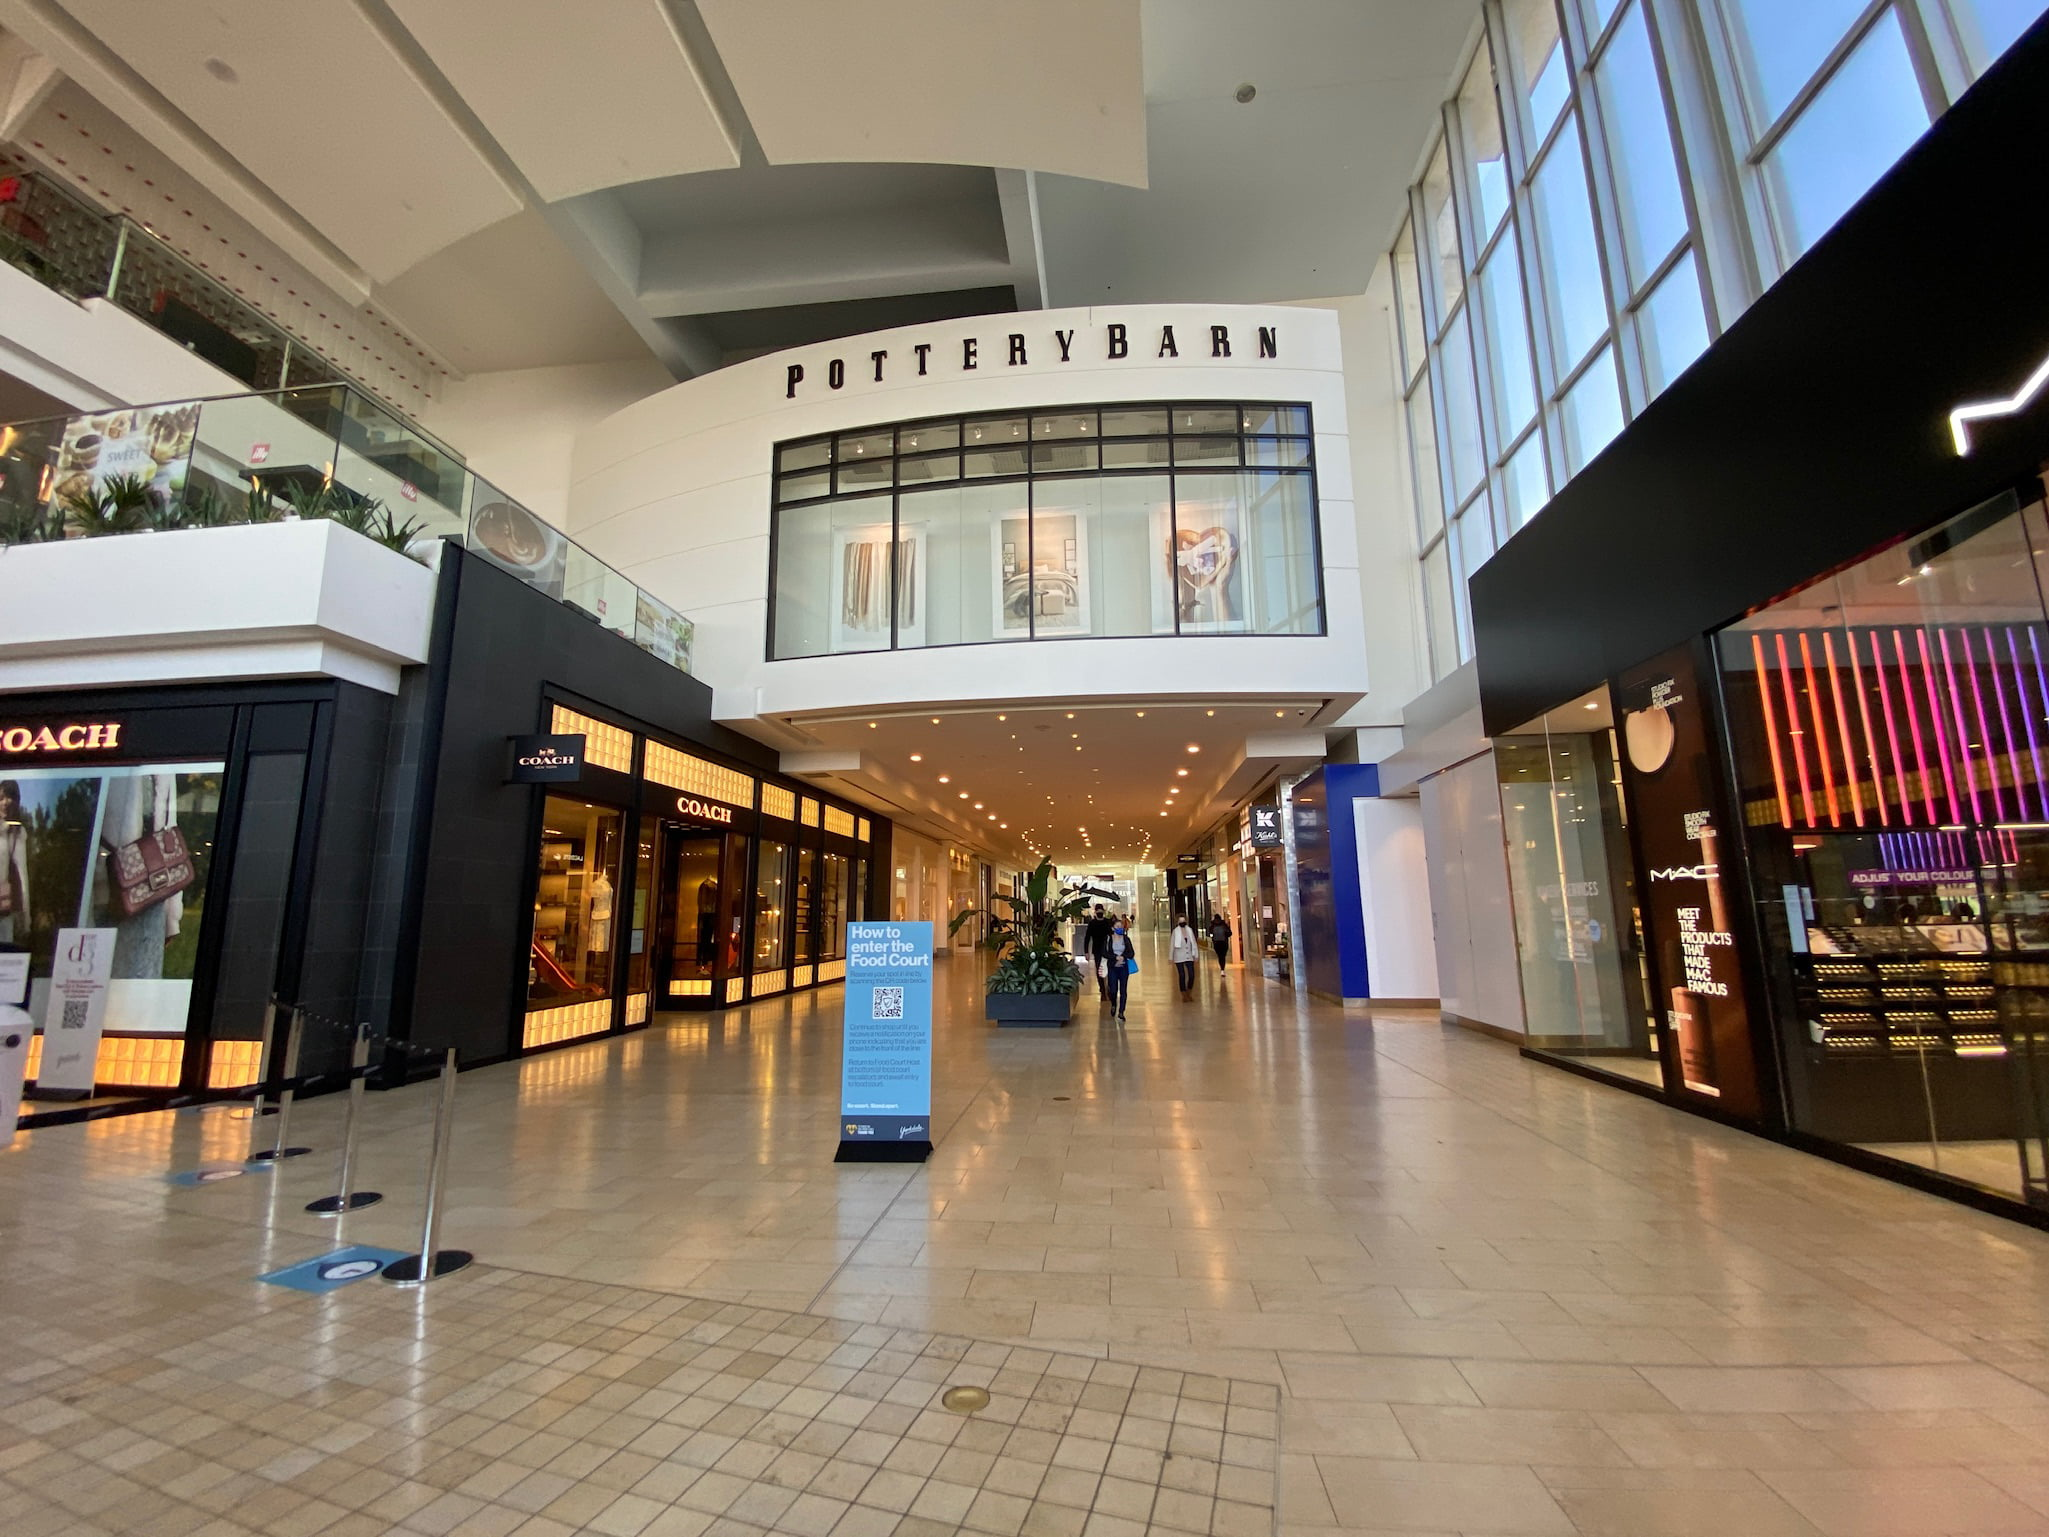 Pottery Barn and Coach at Yorkdale